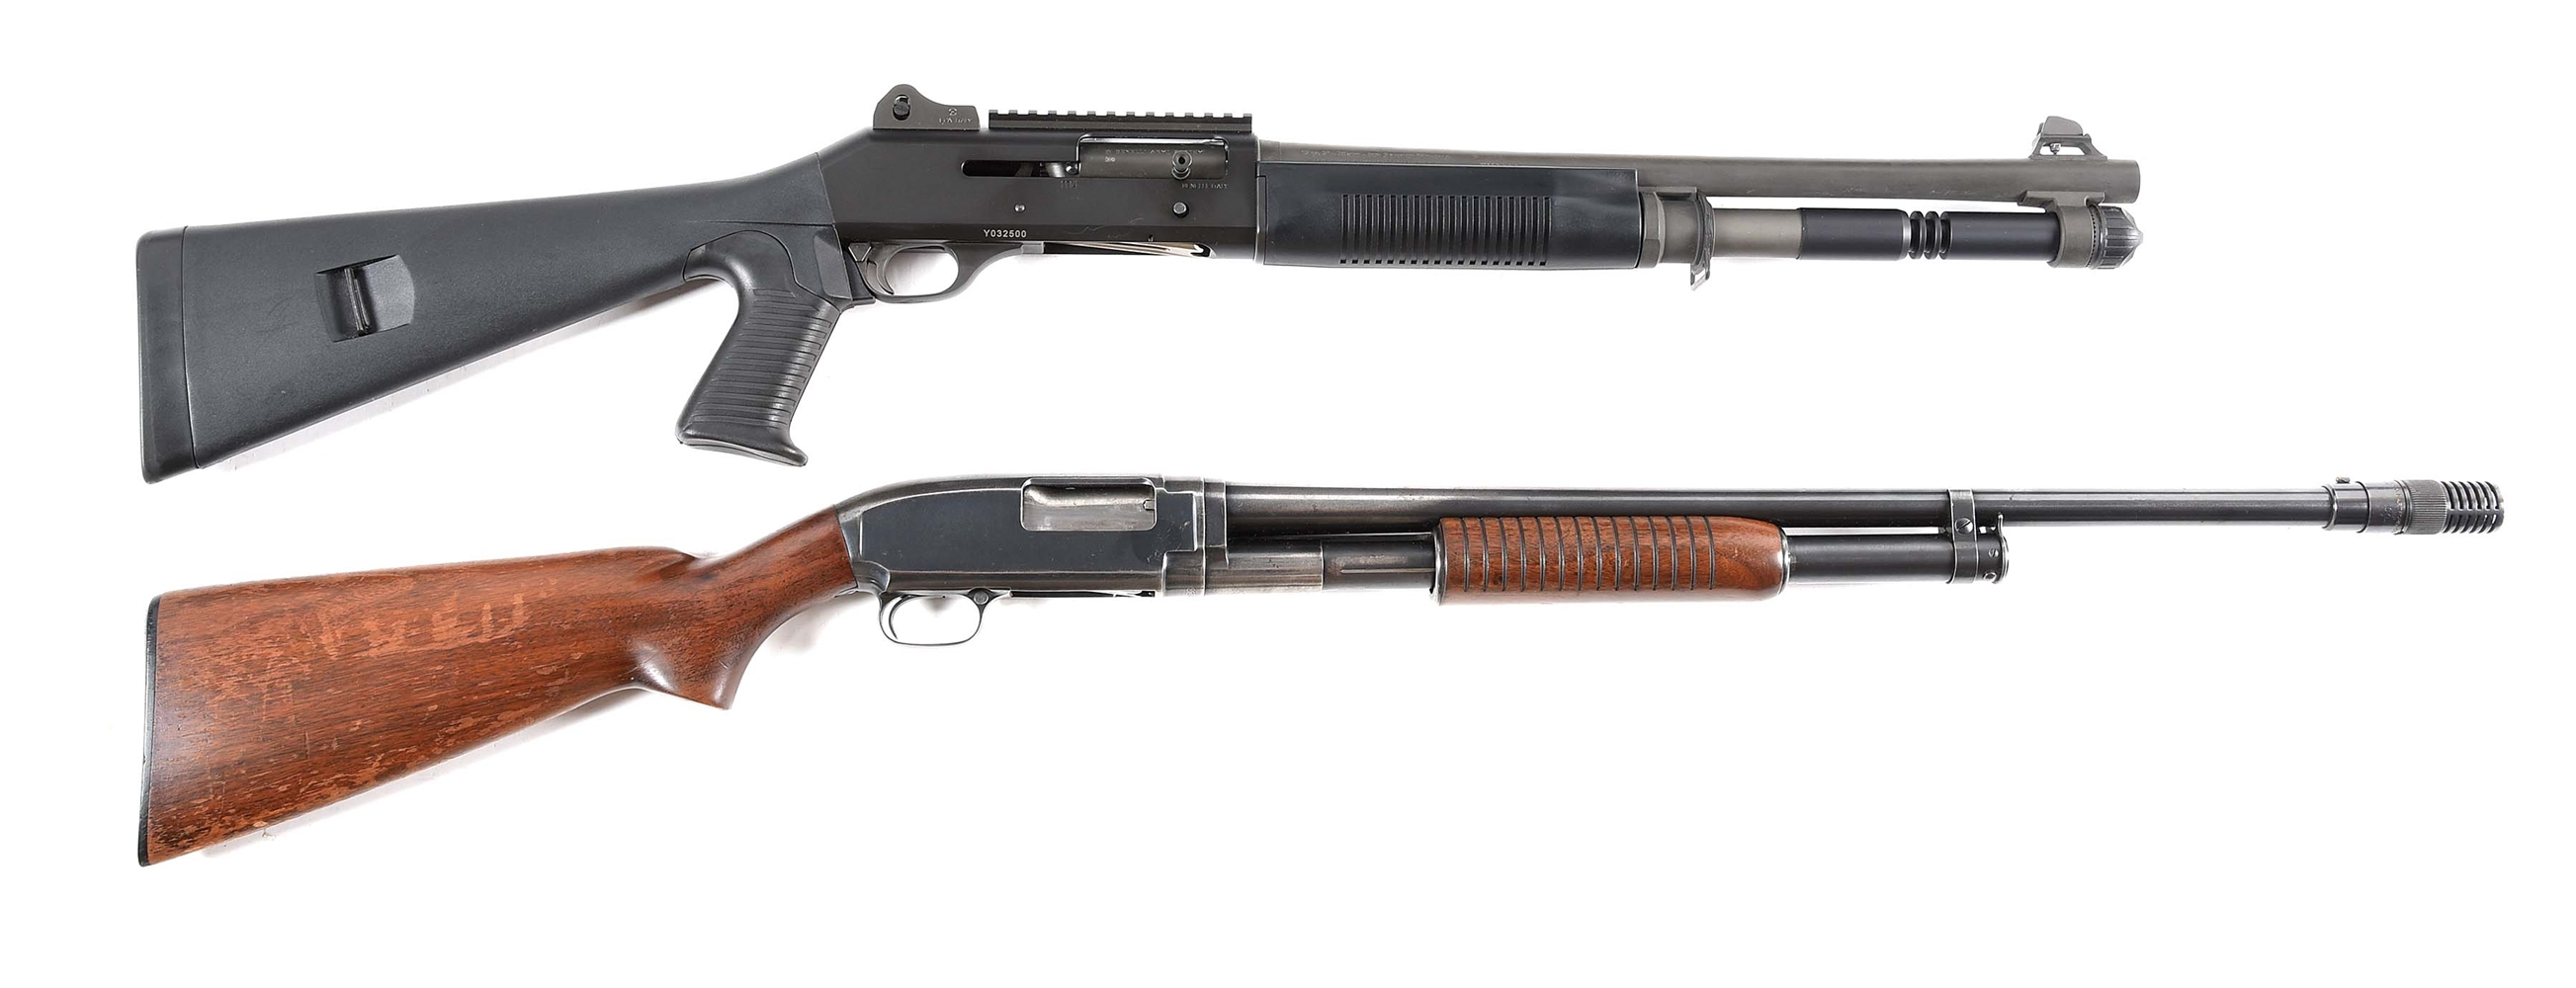 (M+C) LOT OF TWO: BENELLI M4 SEMI AUTOMATIC SHOTGUN AND WINCHESTER MODEL 12 SLIDE ACTION SHOTGUN